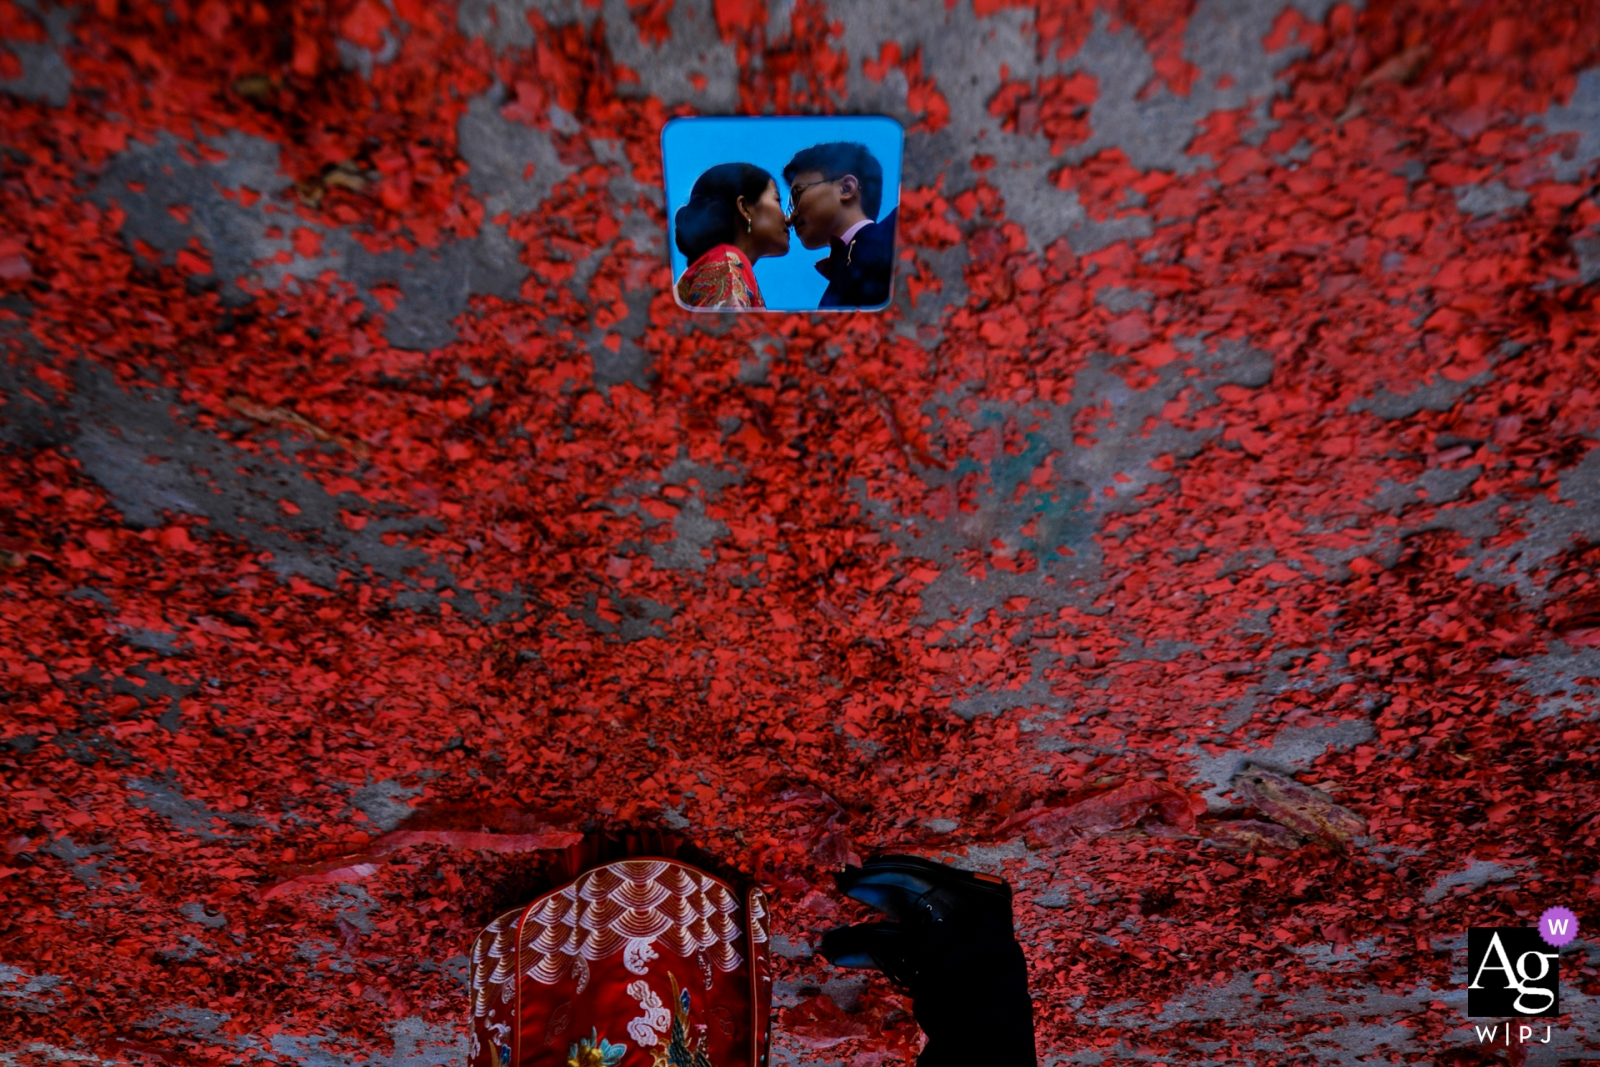 Wedding Day Portrait of the bride and groom using a small mirror on the ground | Fujian, China creative photo